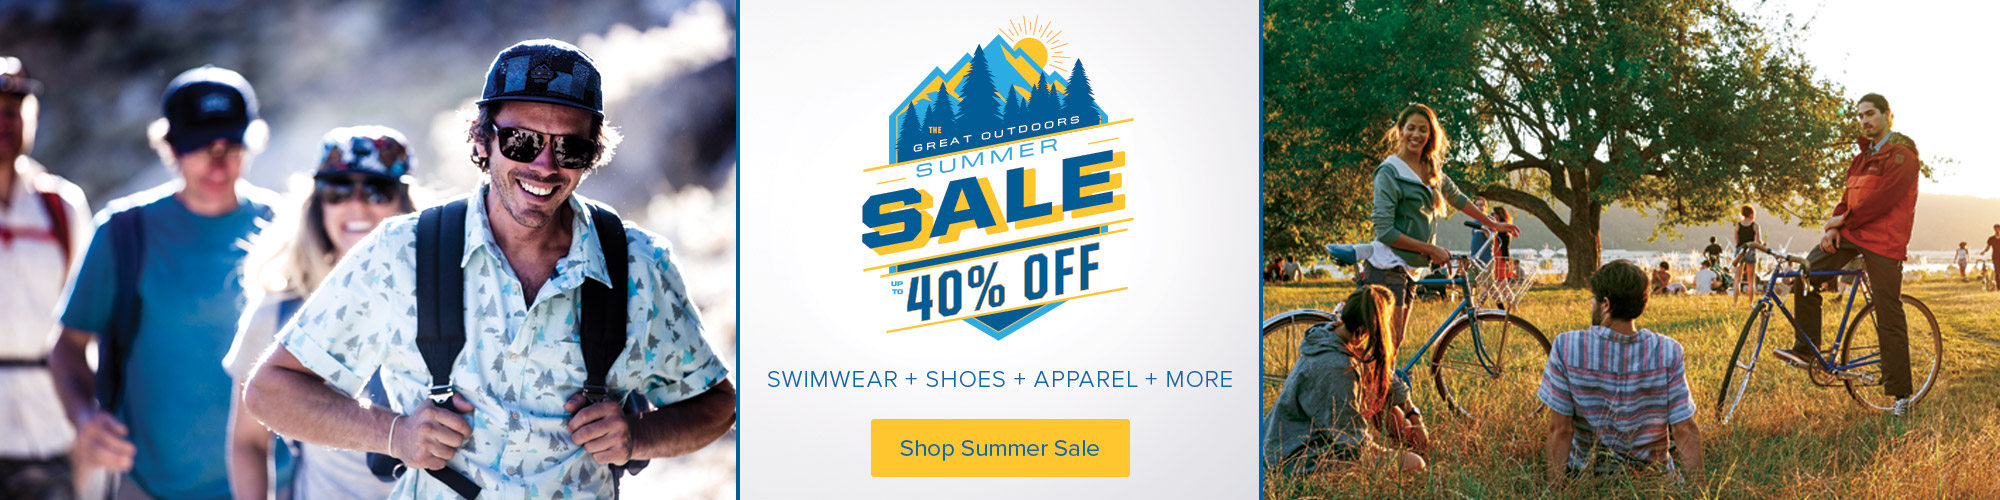 4th of July Sale - Save up to 40% on select clothing, swimwear, sandals and more.